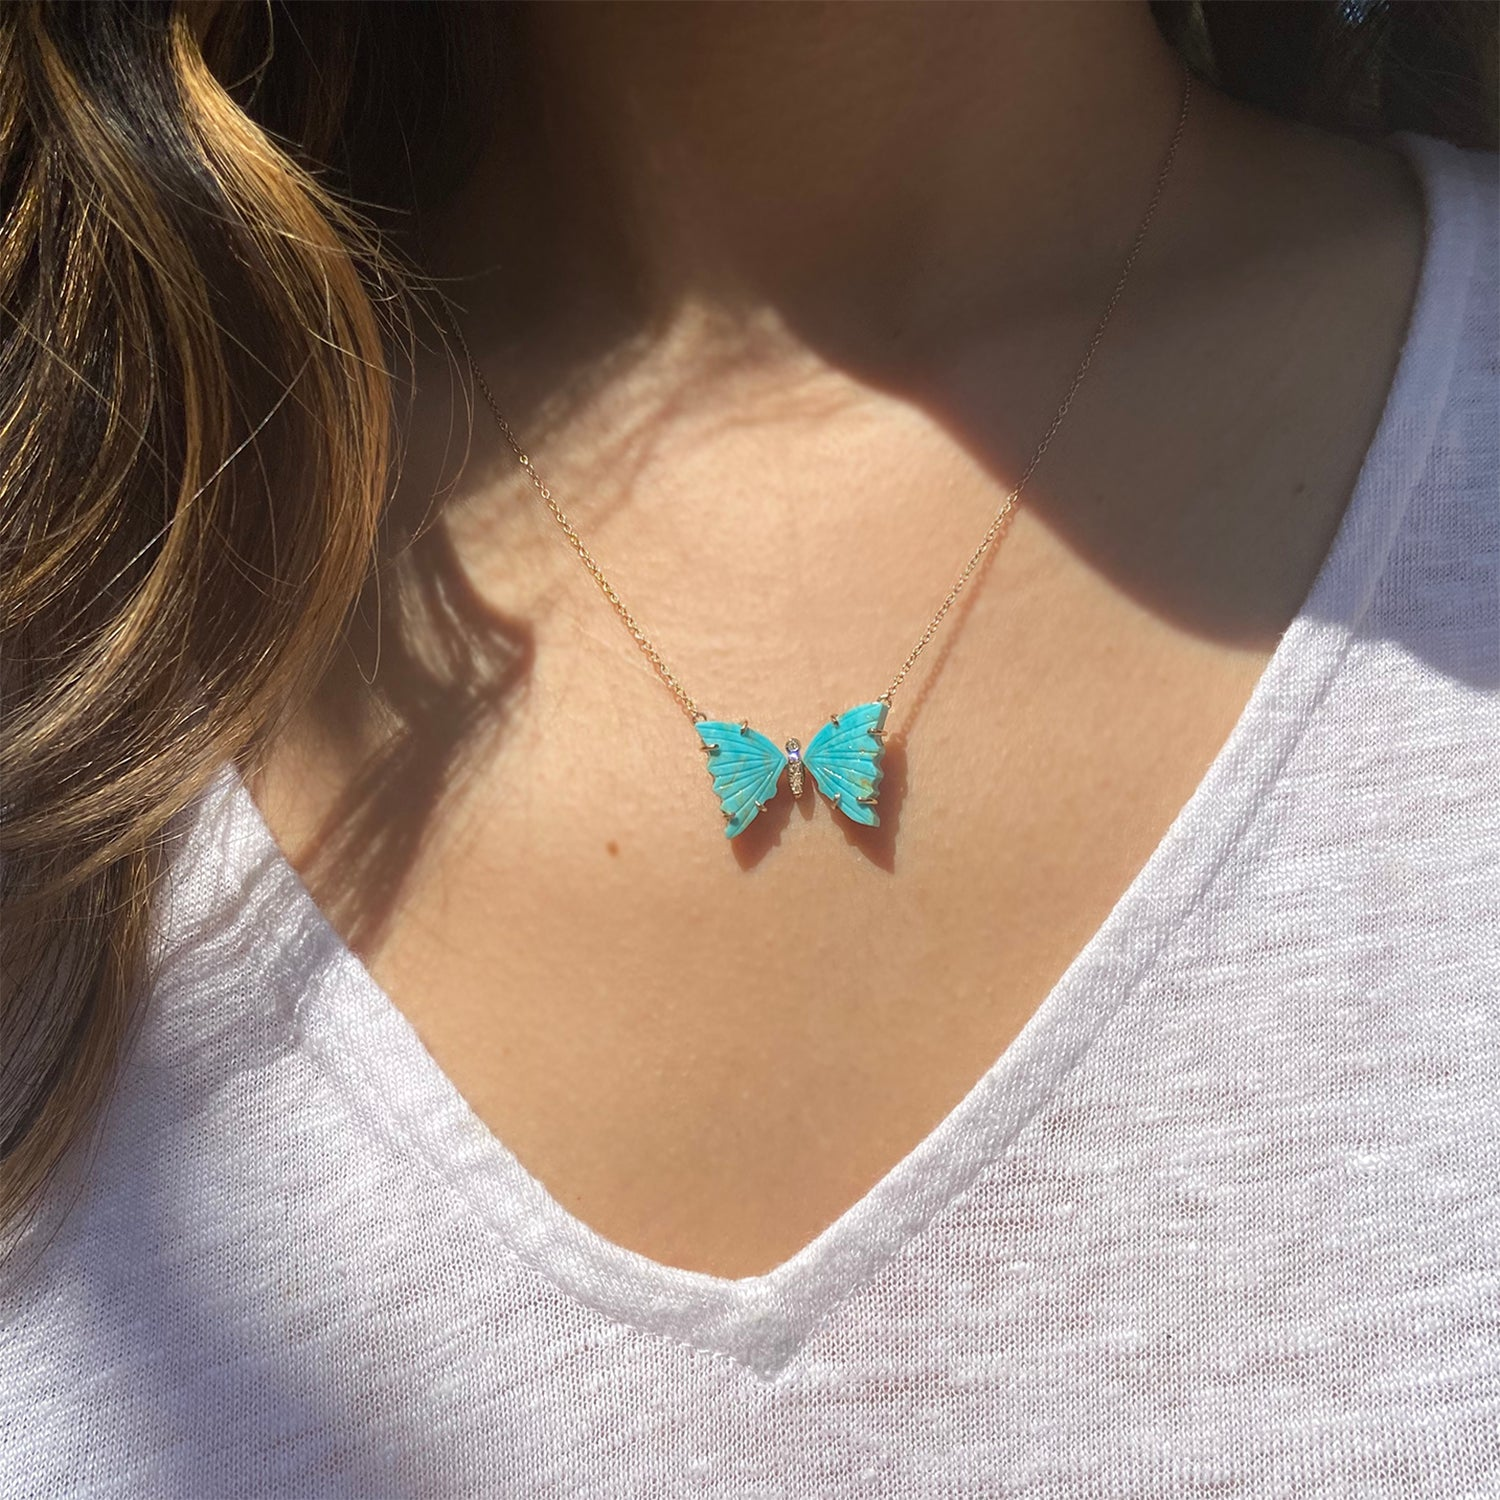 Turquoise Butterfly Necklace With Diamonds